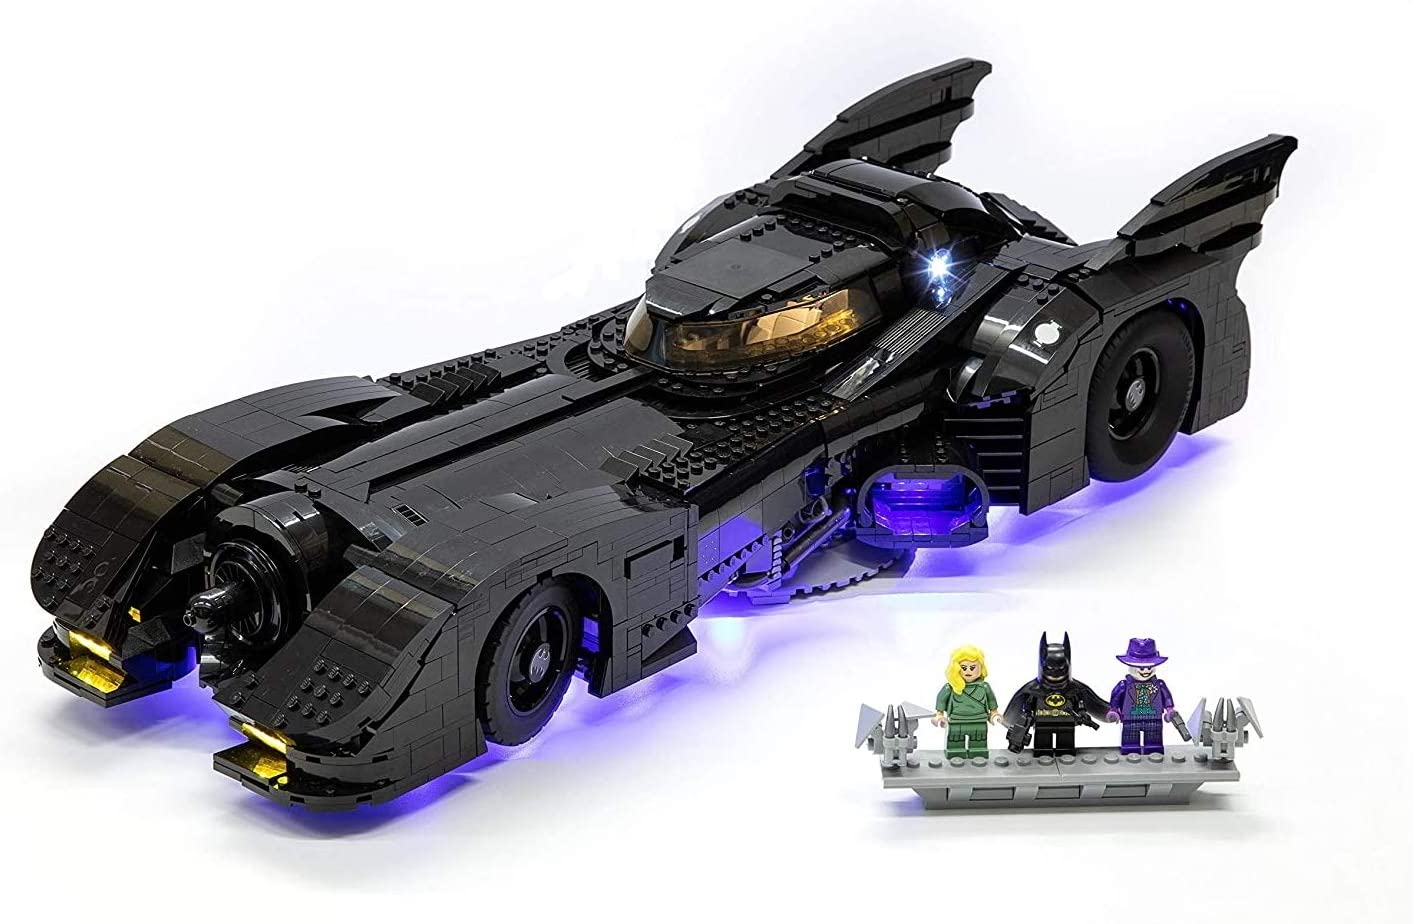 Lego Set Not Included Brick Loot Deluxe LED Light Kit Fits Your Lego Super Heroes 1989 Batmobile Set 76139